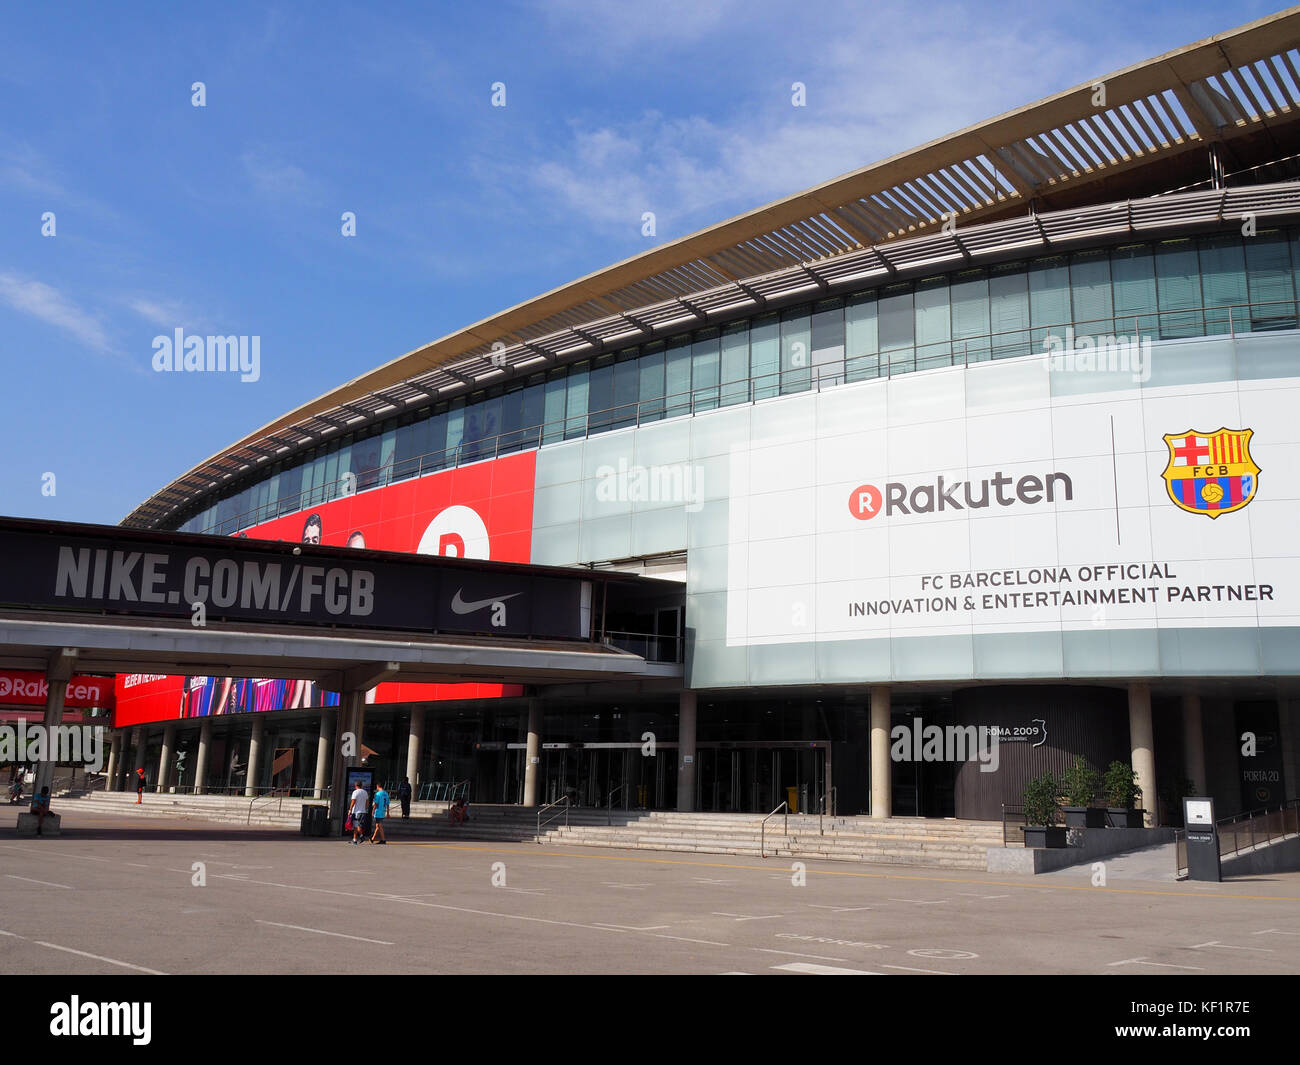 View of the exterior of Camp Nou stadium in Barcelona, Spain - Stock Image